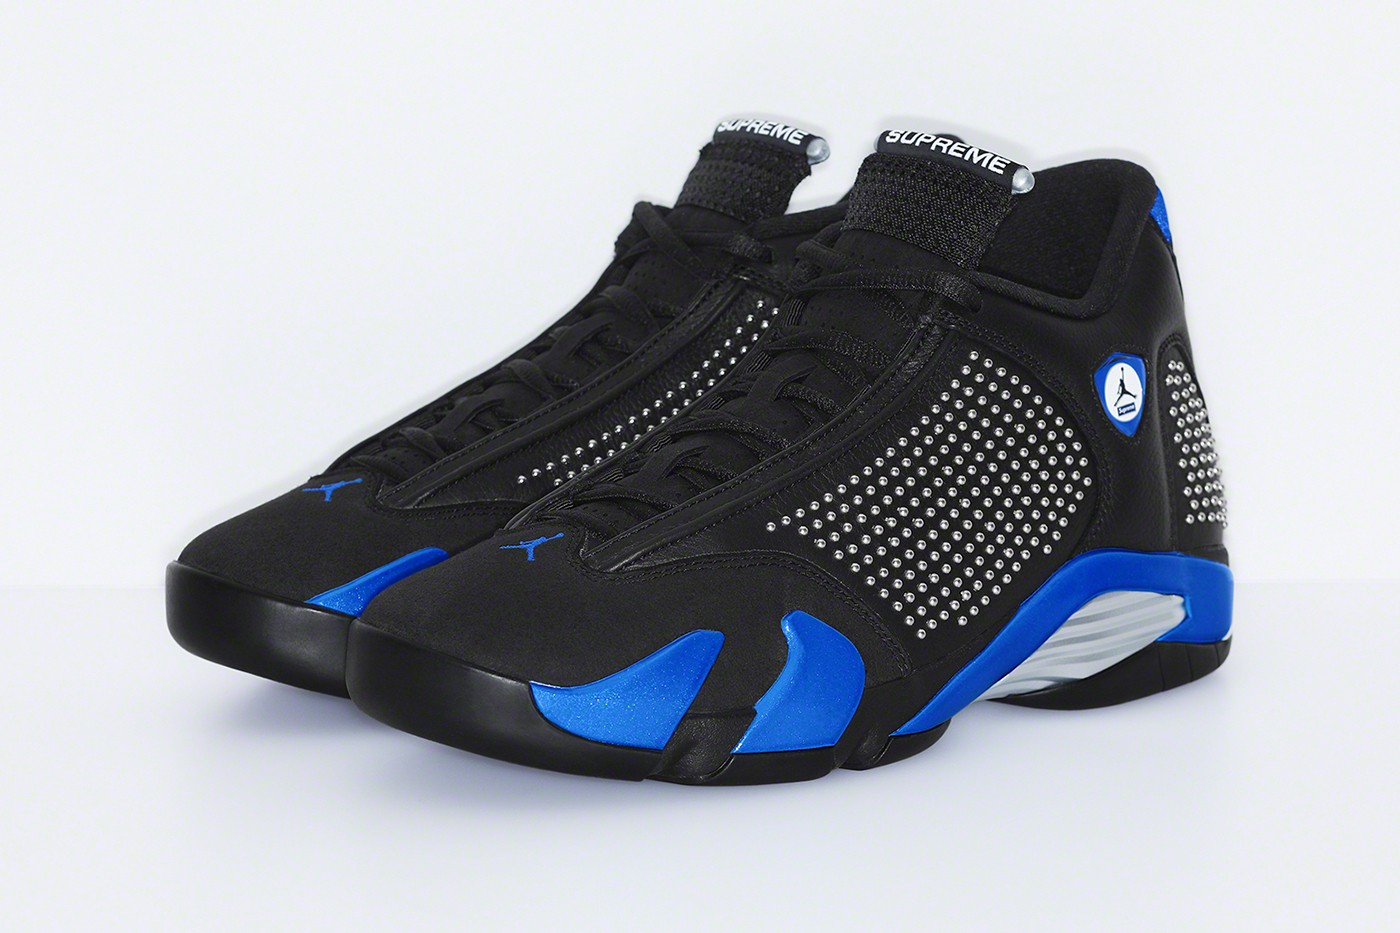 Supreme x Air Jordan 14 'Black/Varsity Royal'June 13, 2019